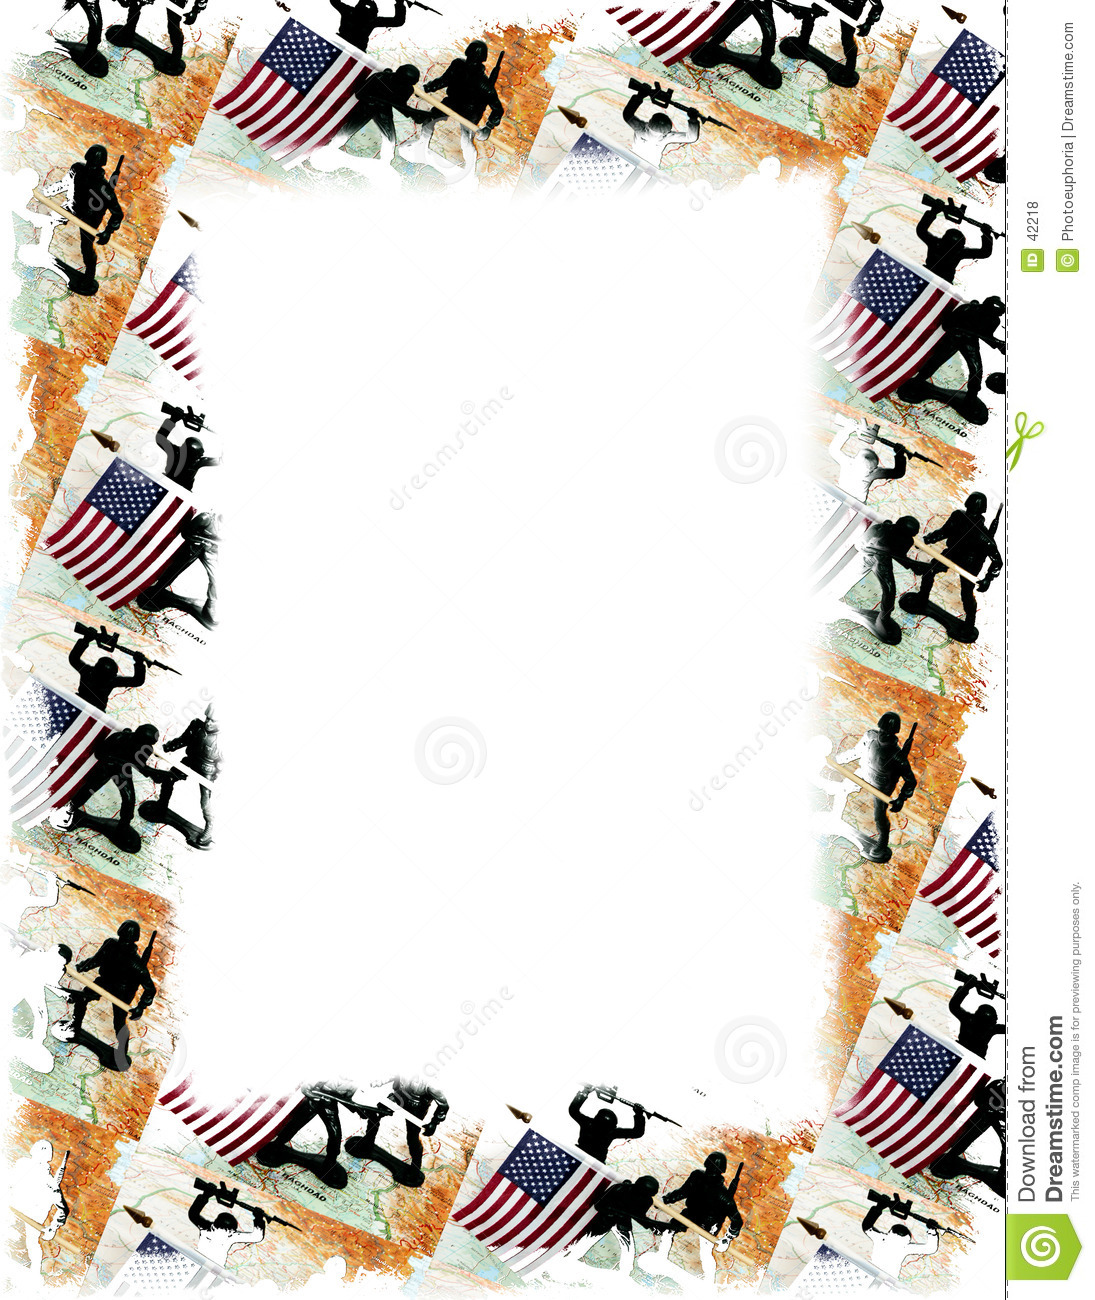 USA/Iraq Frame